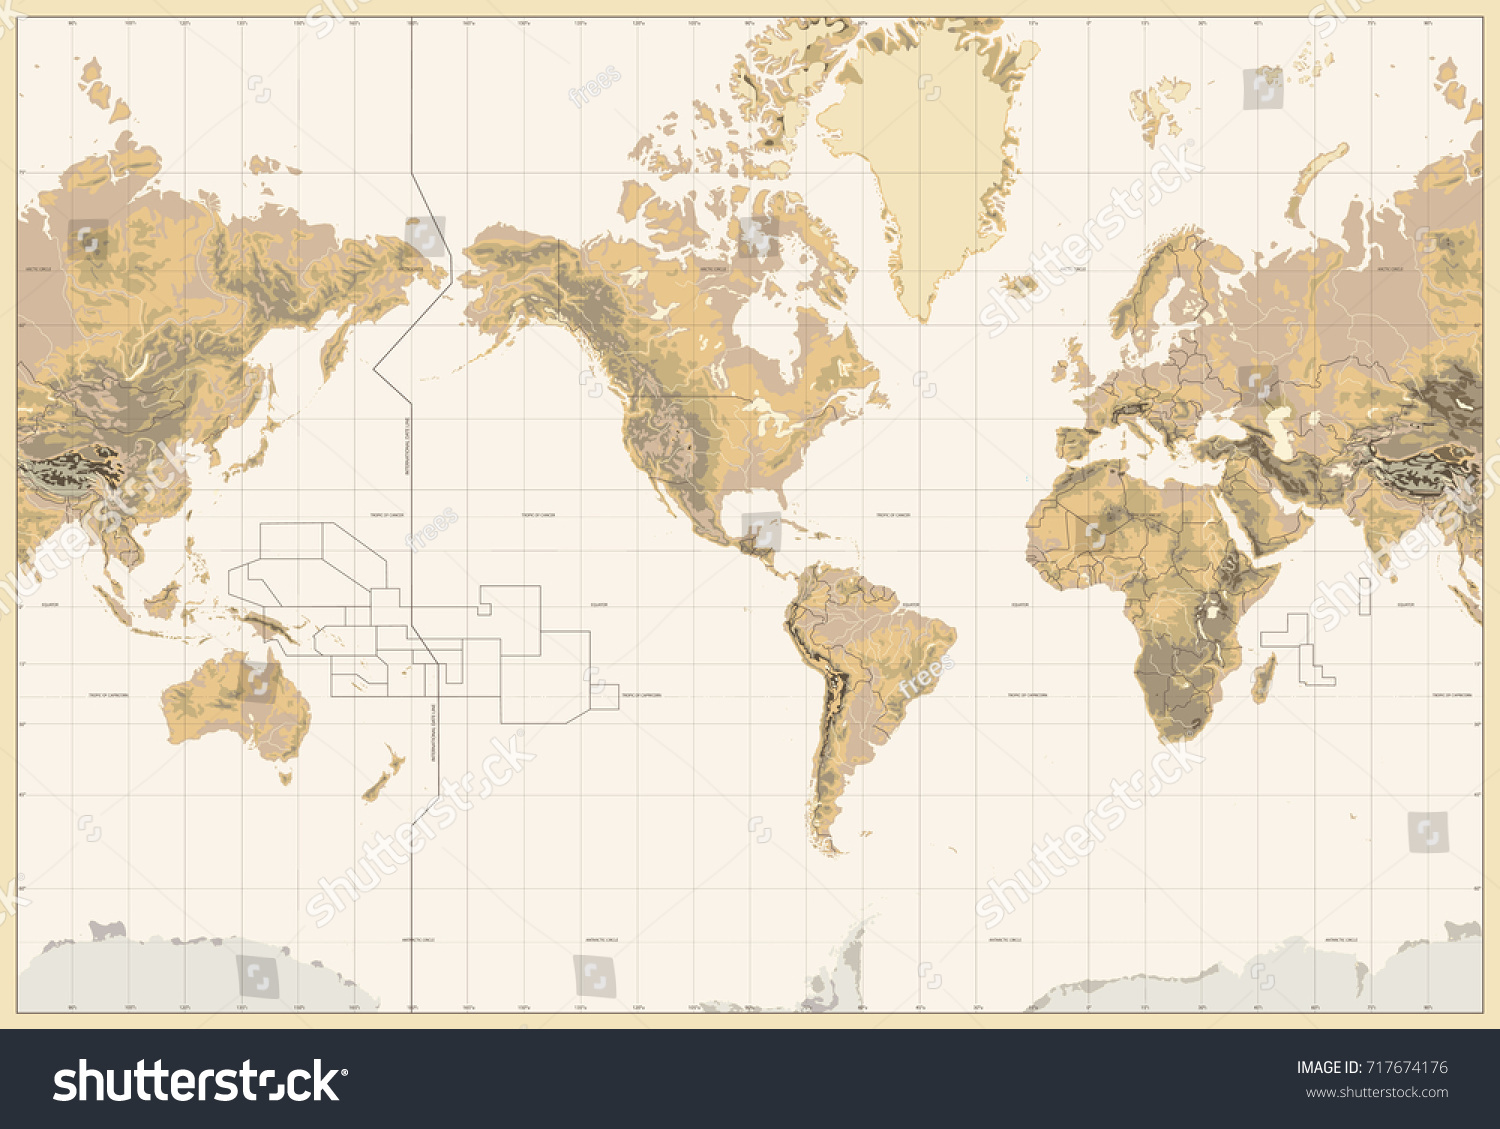 Vintage physical world map america centered colors brown stock vintage physical world map america centered colors of brown no bathymetry and text gumiabroncs Choice Image